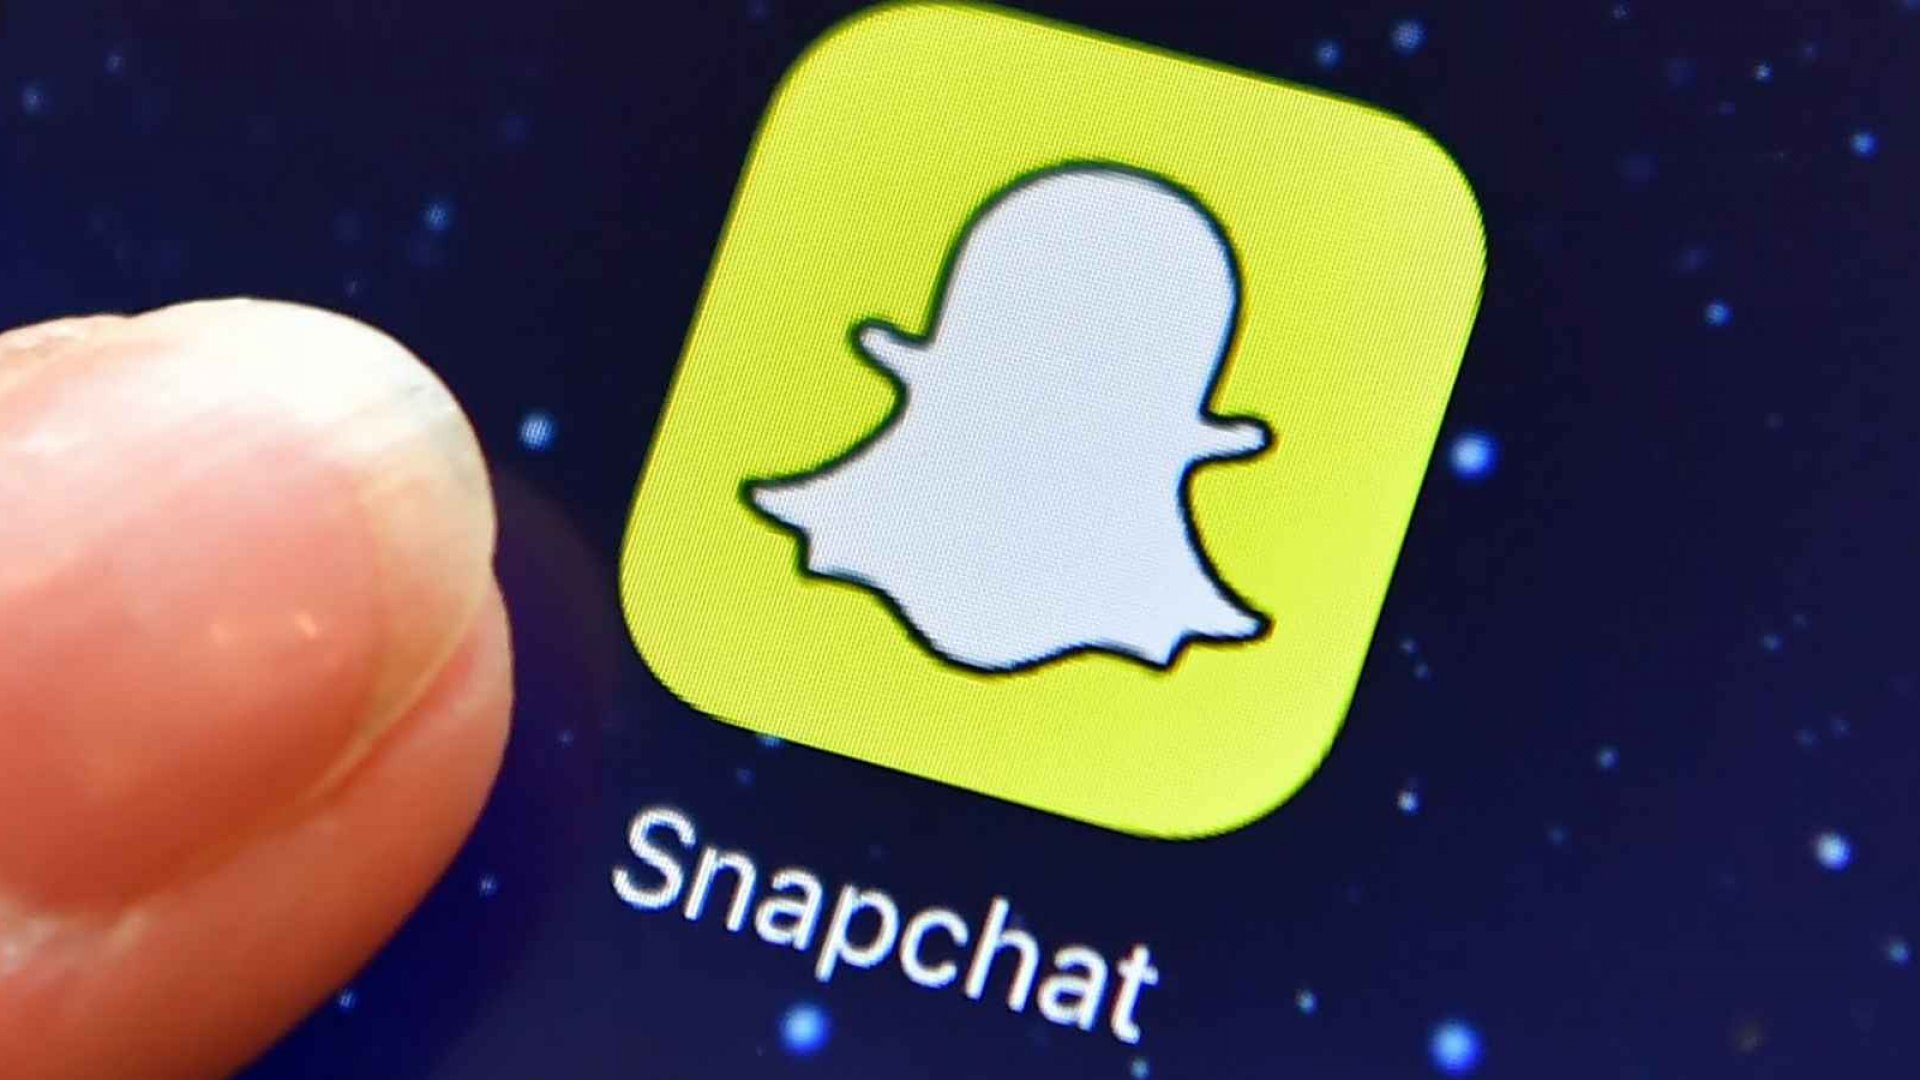 Snapchat Flipflops On Creepiness And Enables Ad Targeting